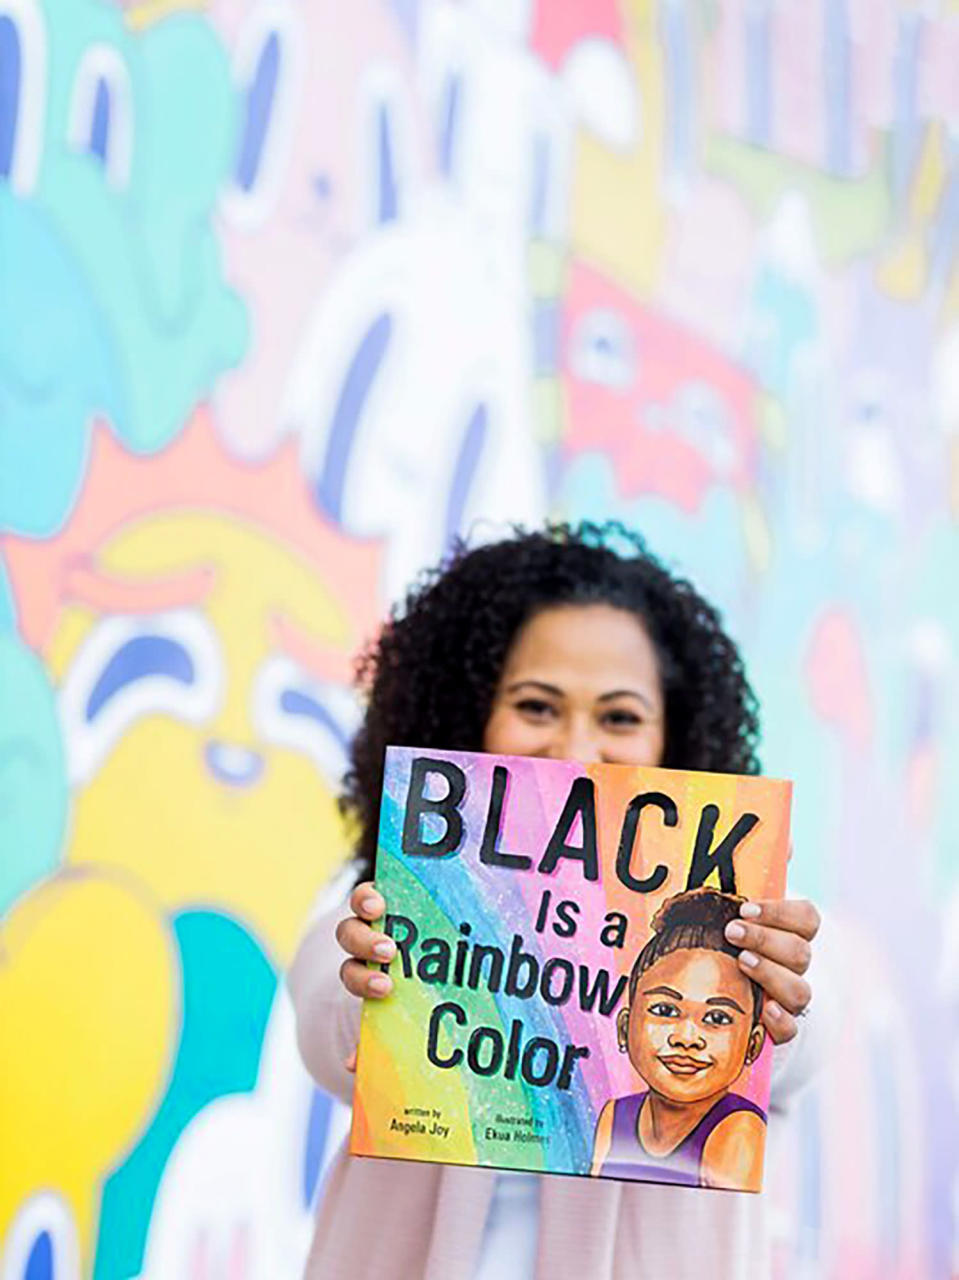 """In this November 2019 photo provided by Blossom Blue Studios, author Angela Joy poses with her 2020 book, """"Black is a Rainbow Color,"""" in Long Beach, Calif. Seeing the lack of diversity in children's books, Joy said she felt a responsibility to her community to write this book. (BlossomBlueStudios.com via AP)"""